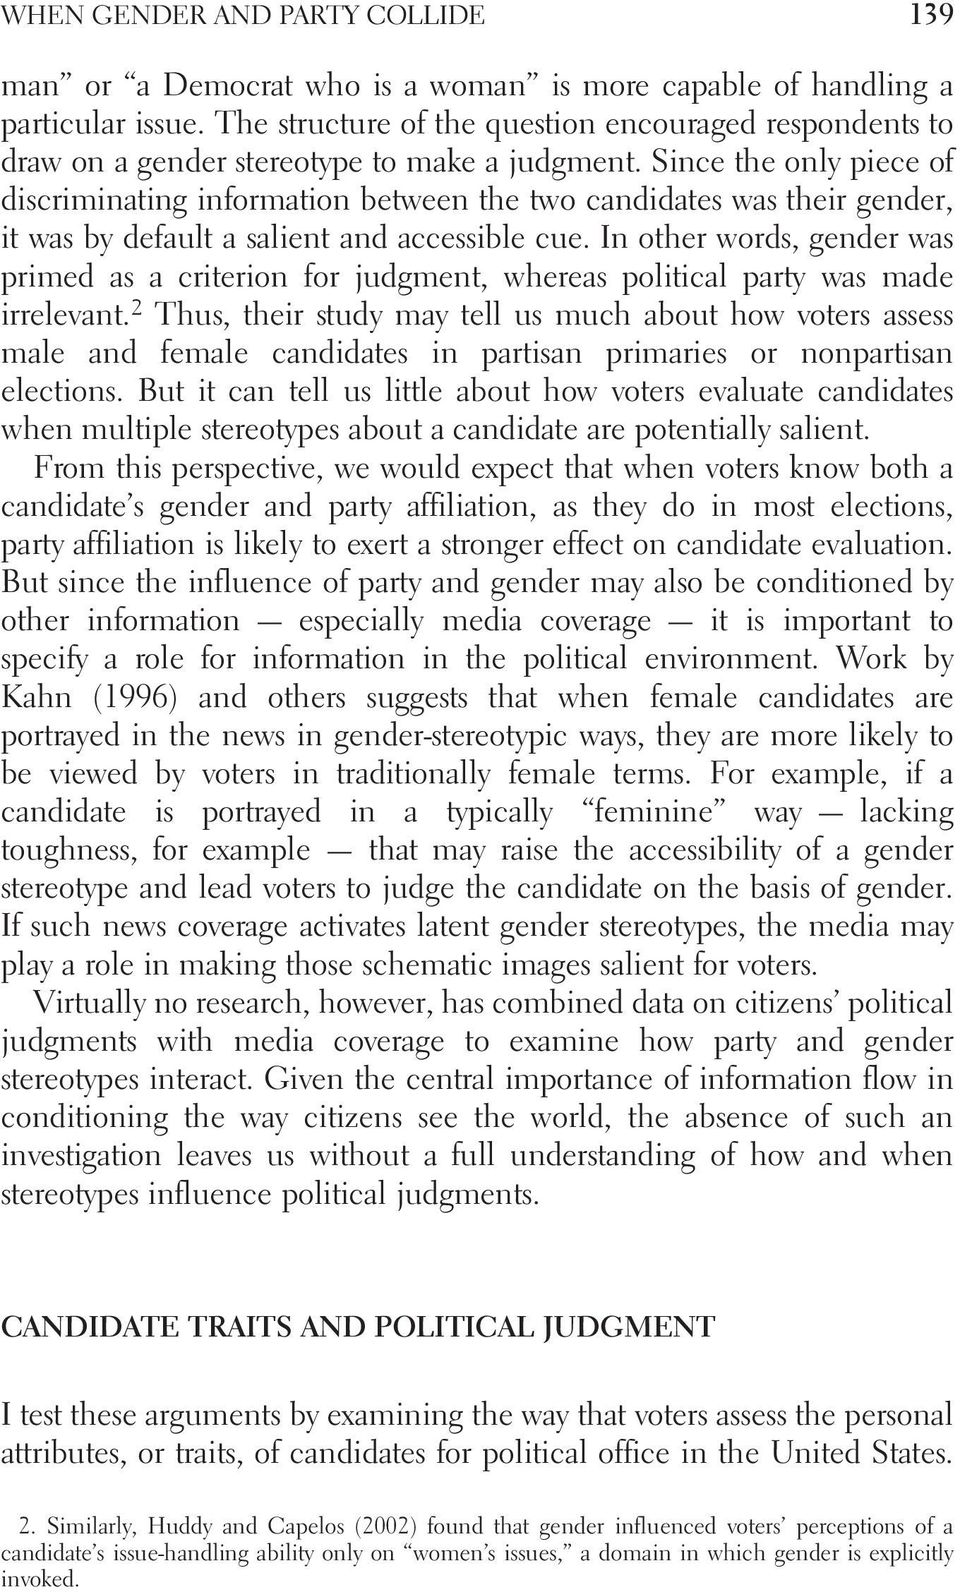 Since the only piece of discriminating information between the two candidates was their gender, it was by default a salient and accessible cue.